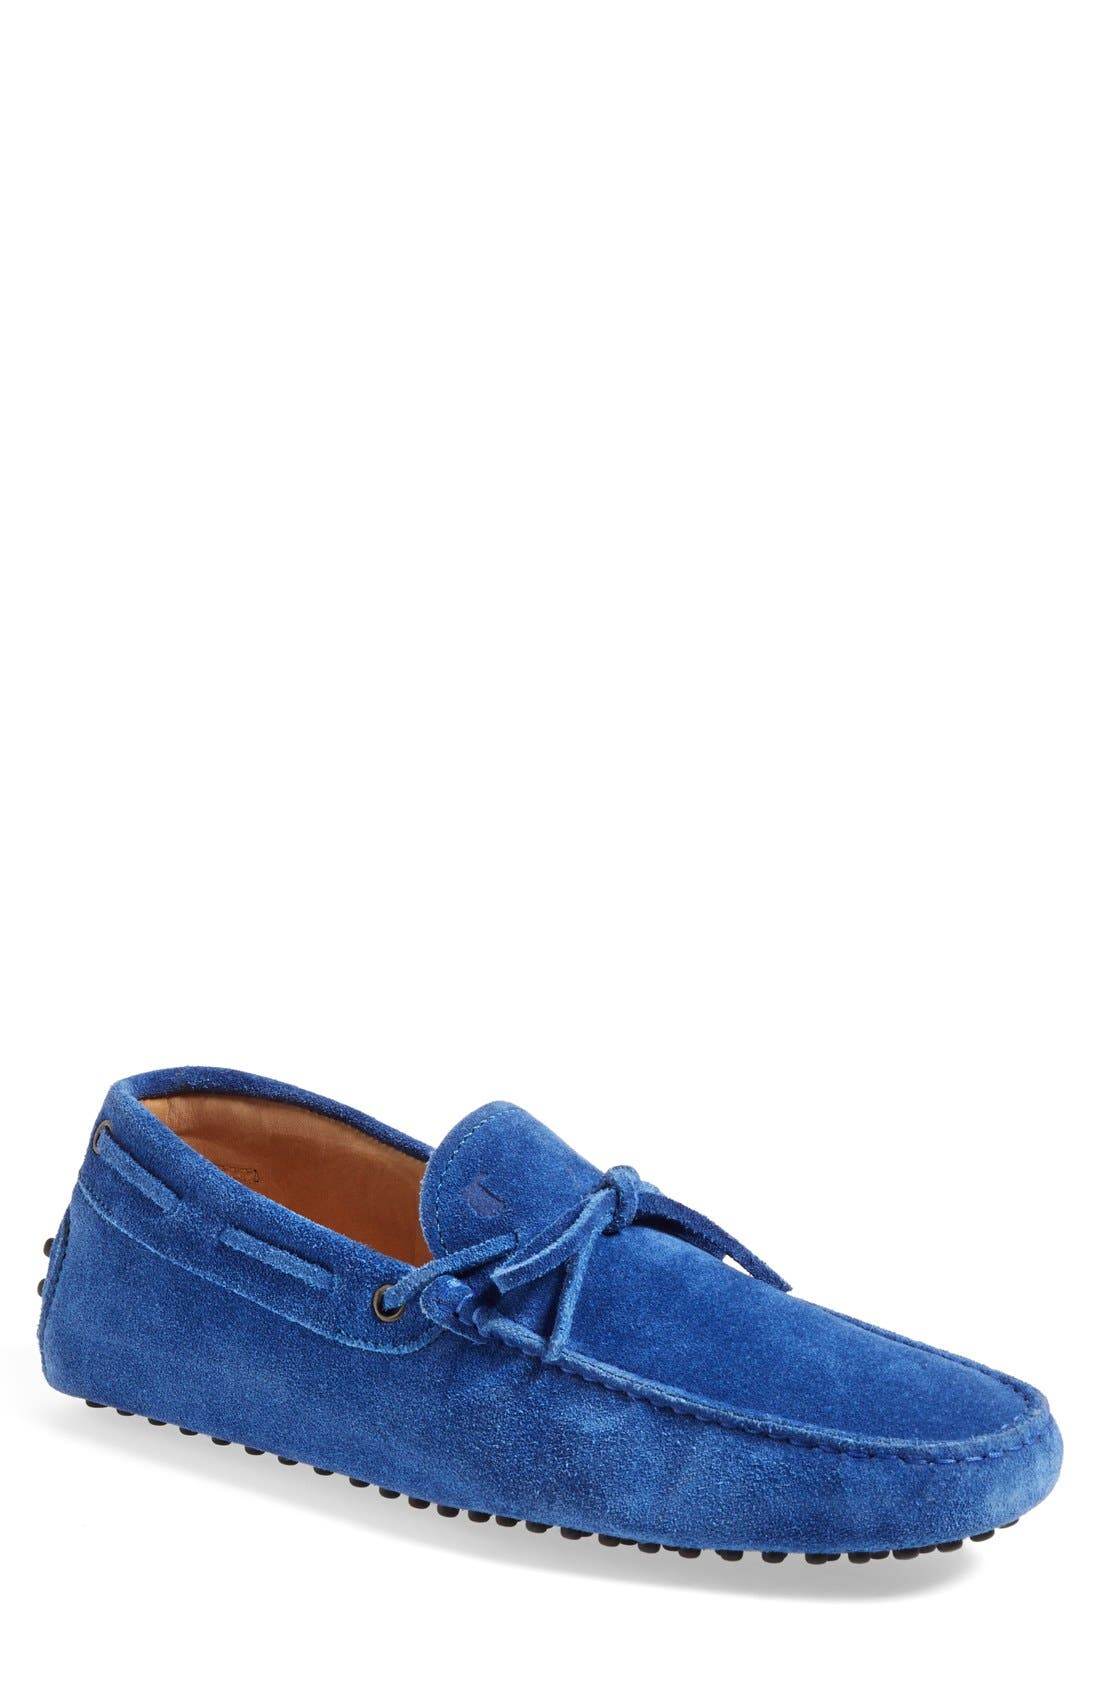 Gommini Tie Front Driving Moccasin,                             Main thumbnail 12, color,